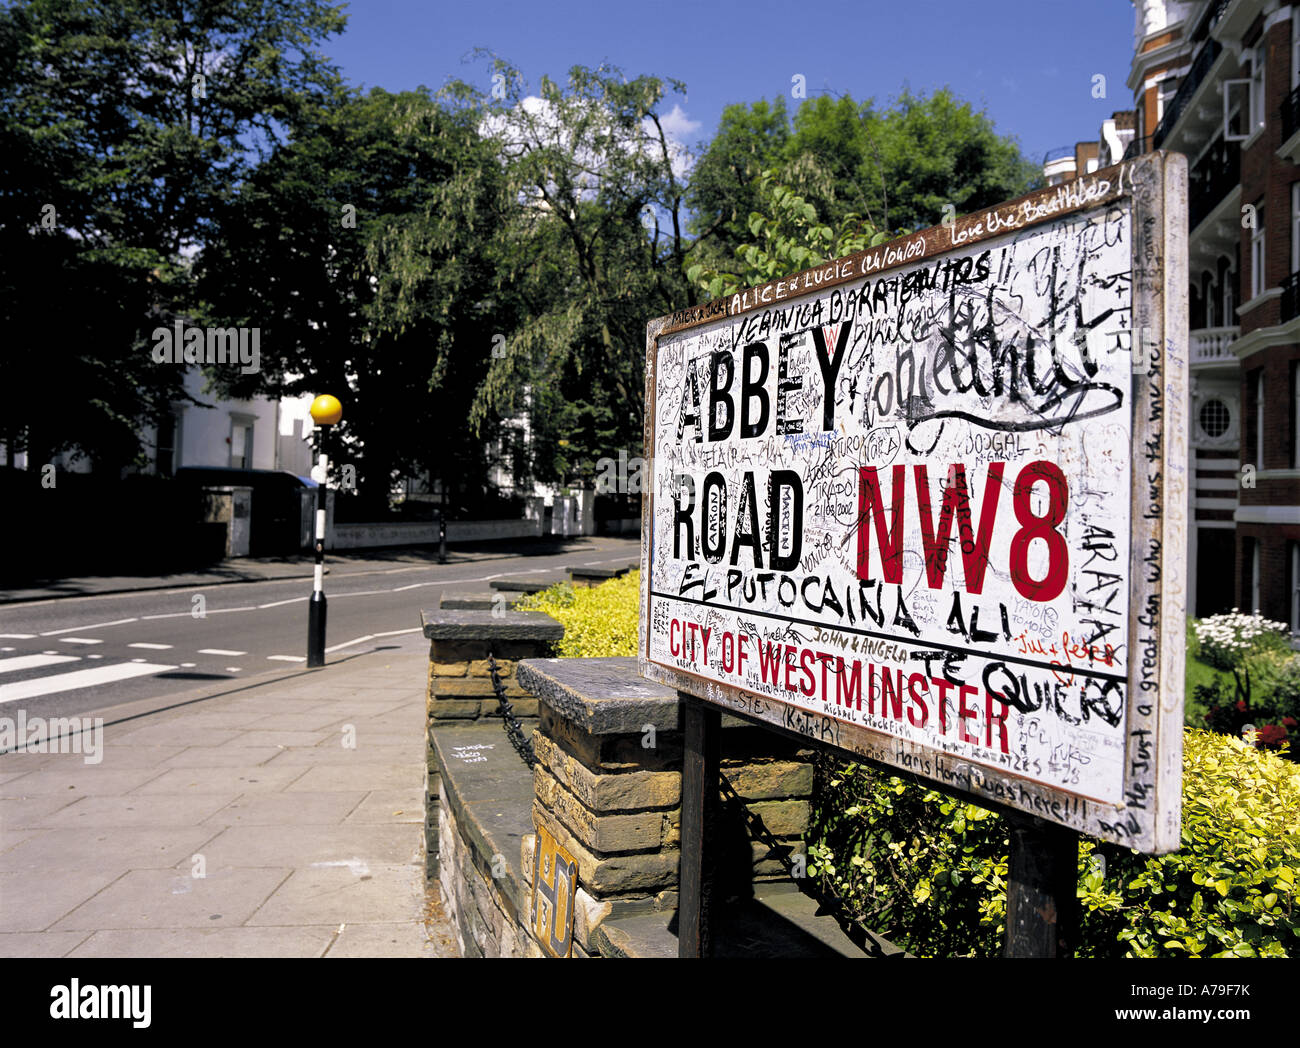 The Beatles Abbey Road London England - Stock Image